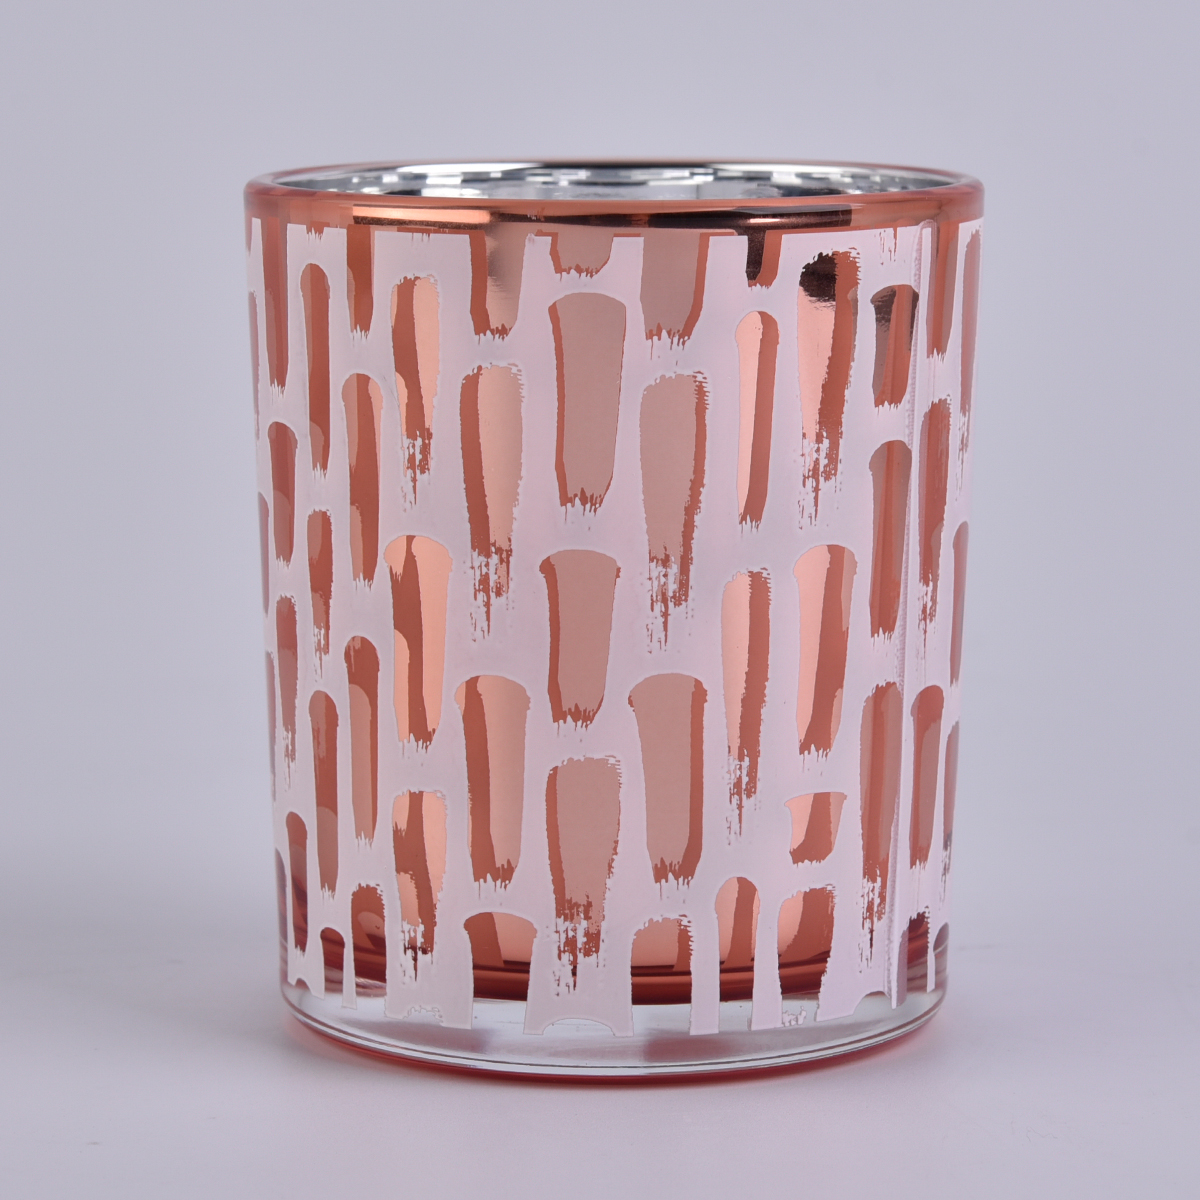 Rose Gold Plating Glass Candle Jars in Sunny Glassware